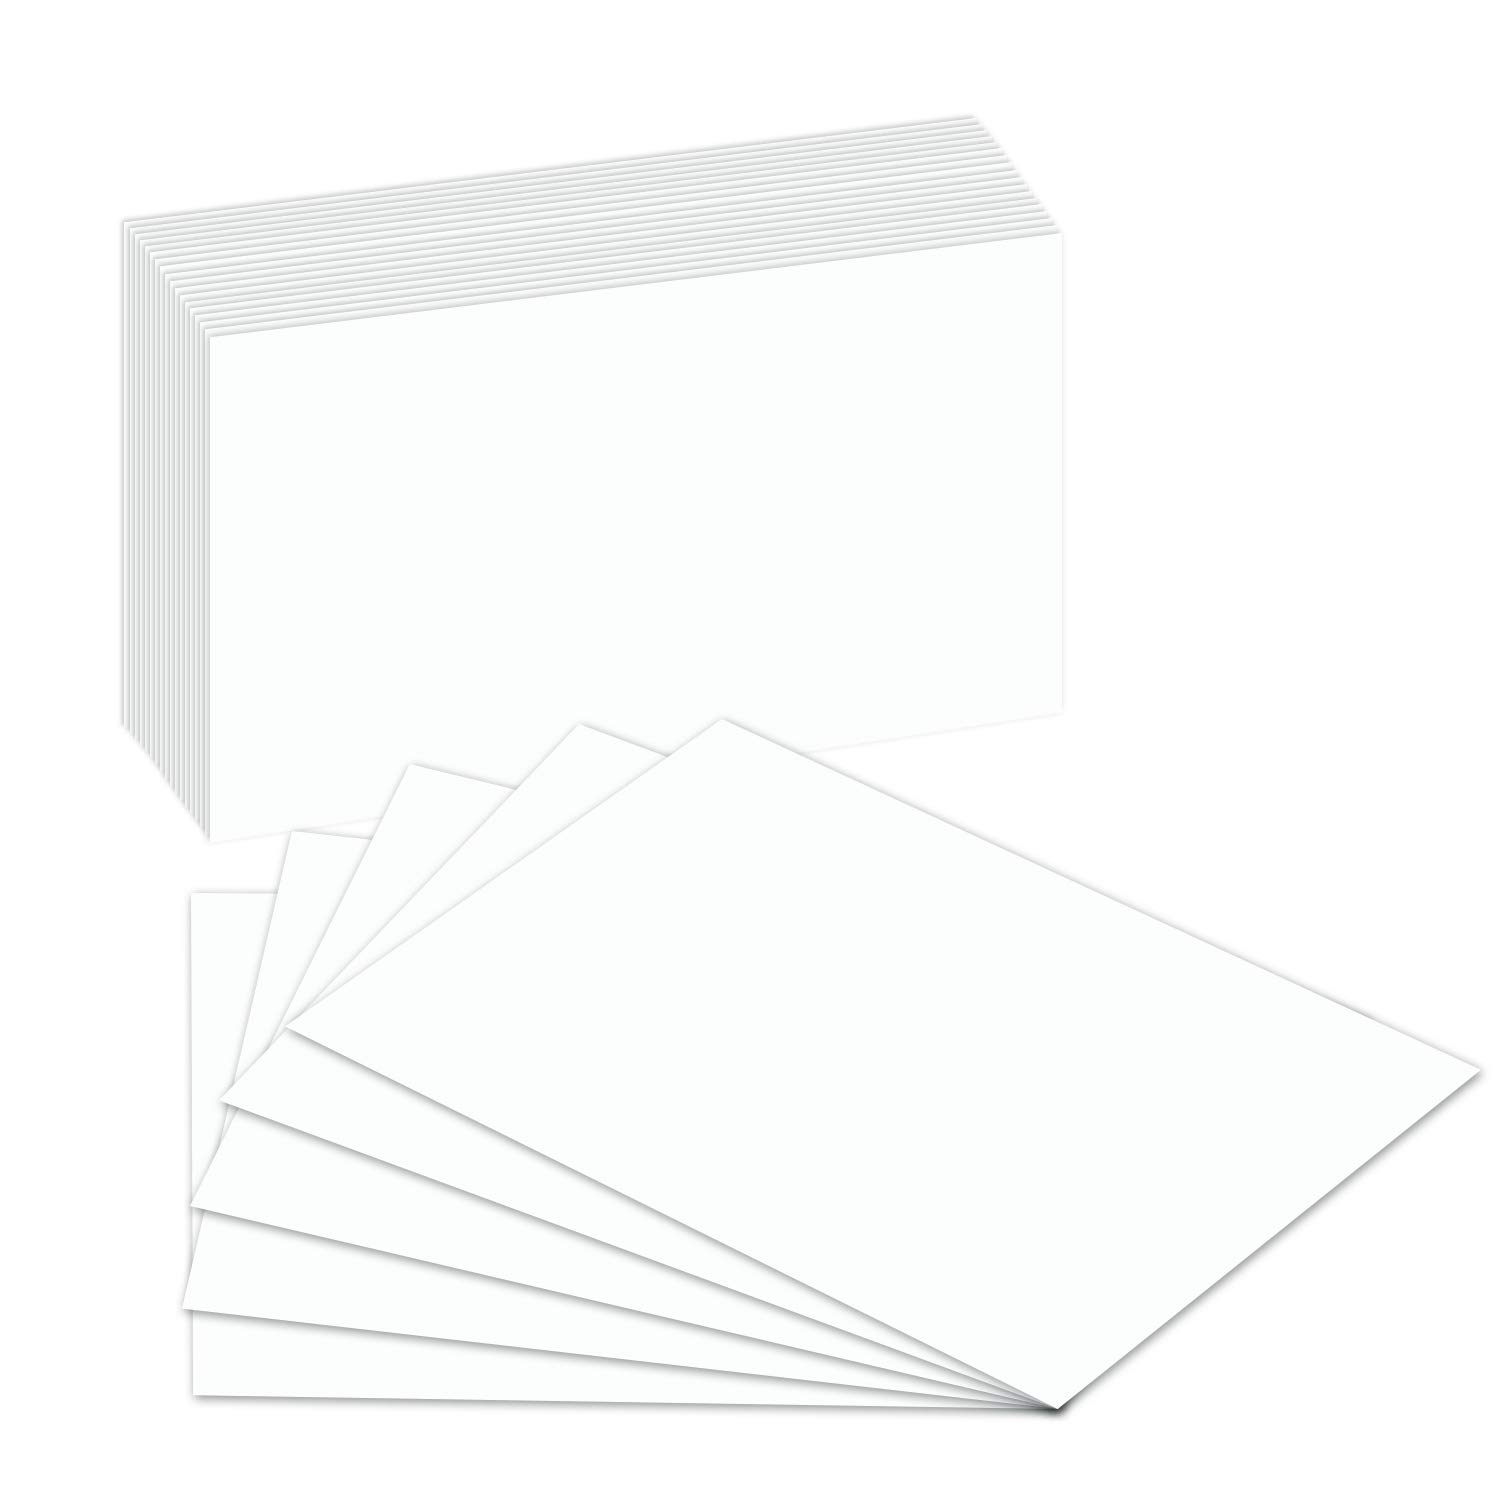 Extra Thick  Heavy Blank Index Cards, On 14pt. 100lb Heavyweight Thick White Cover Stock. 100 Cards Per Pack (8 x 10)